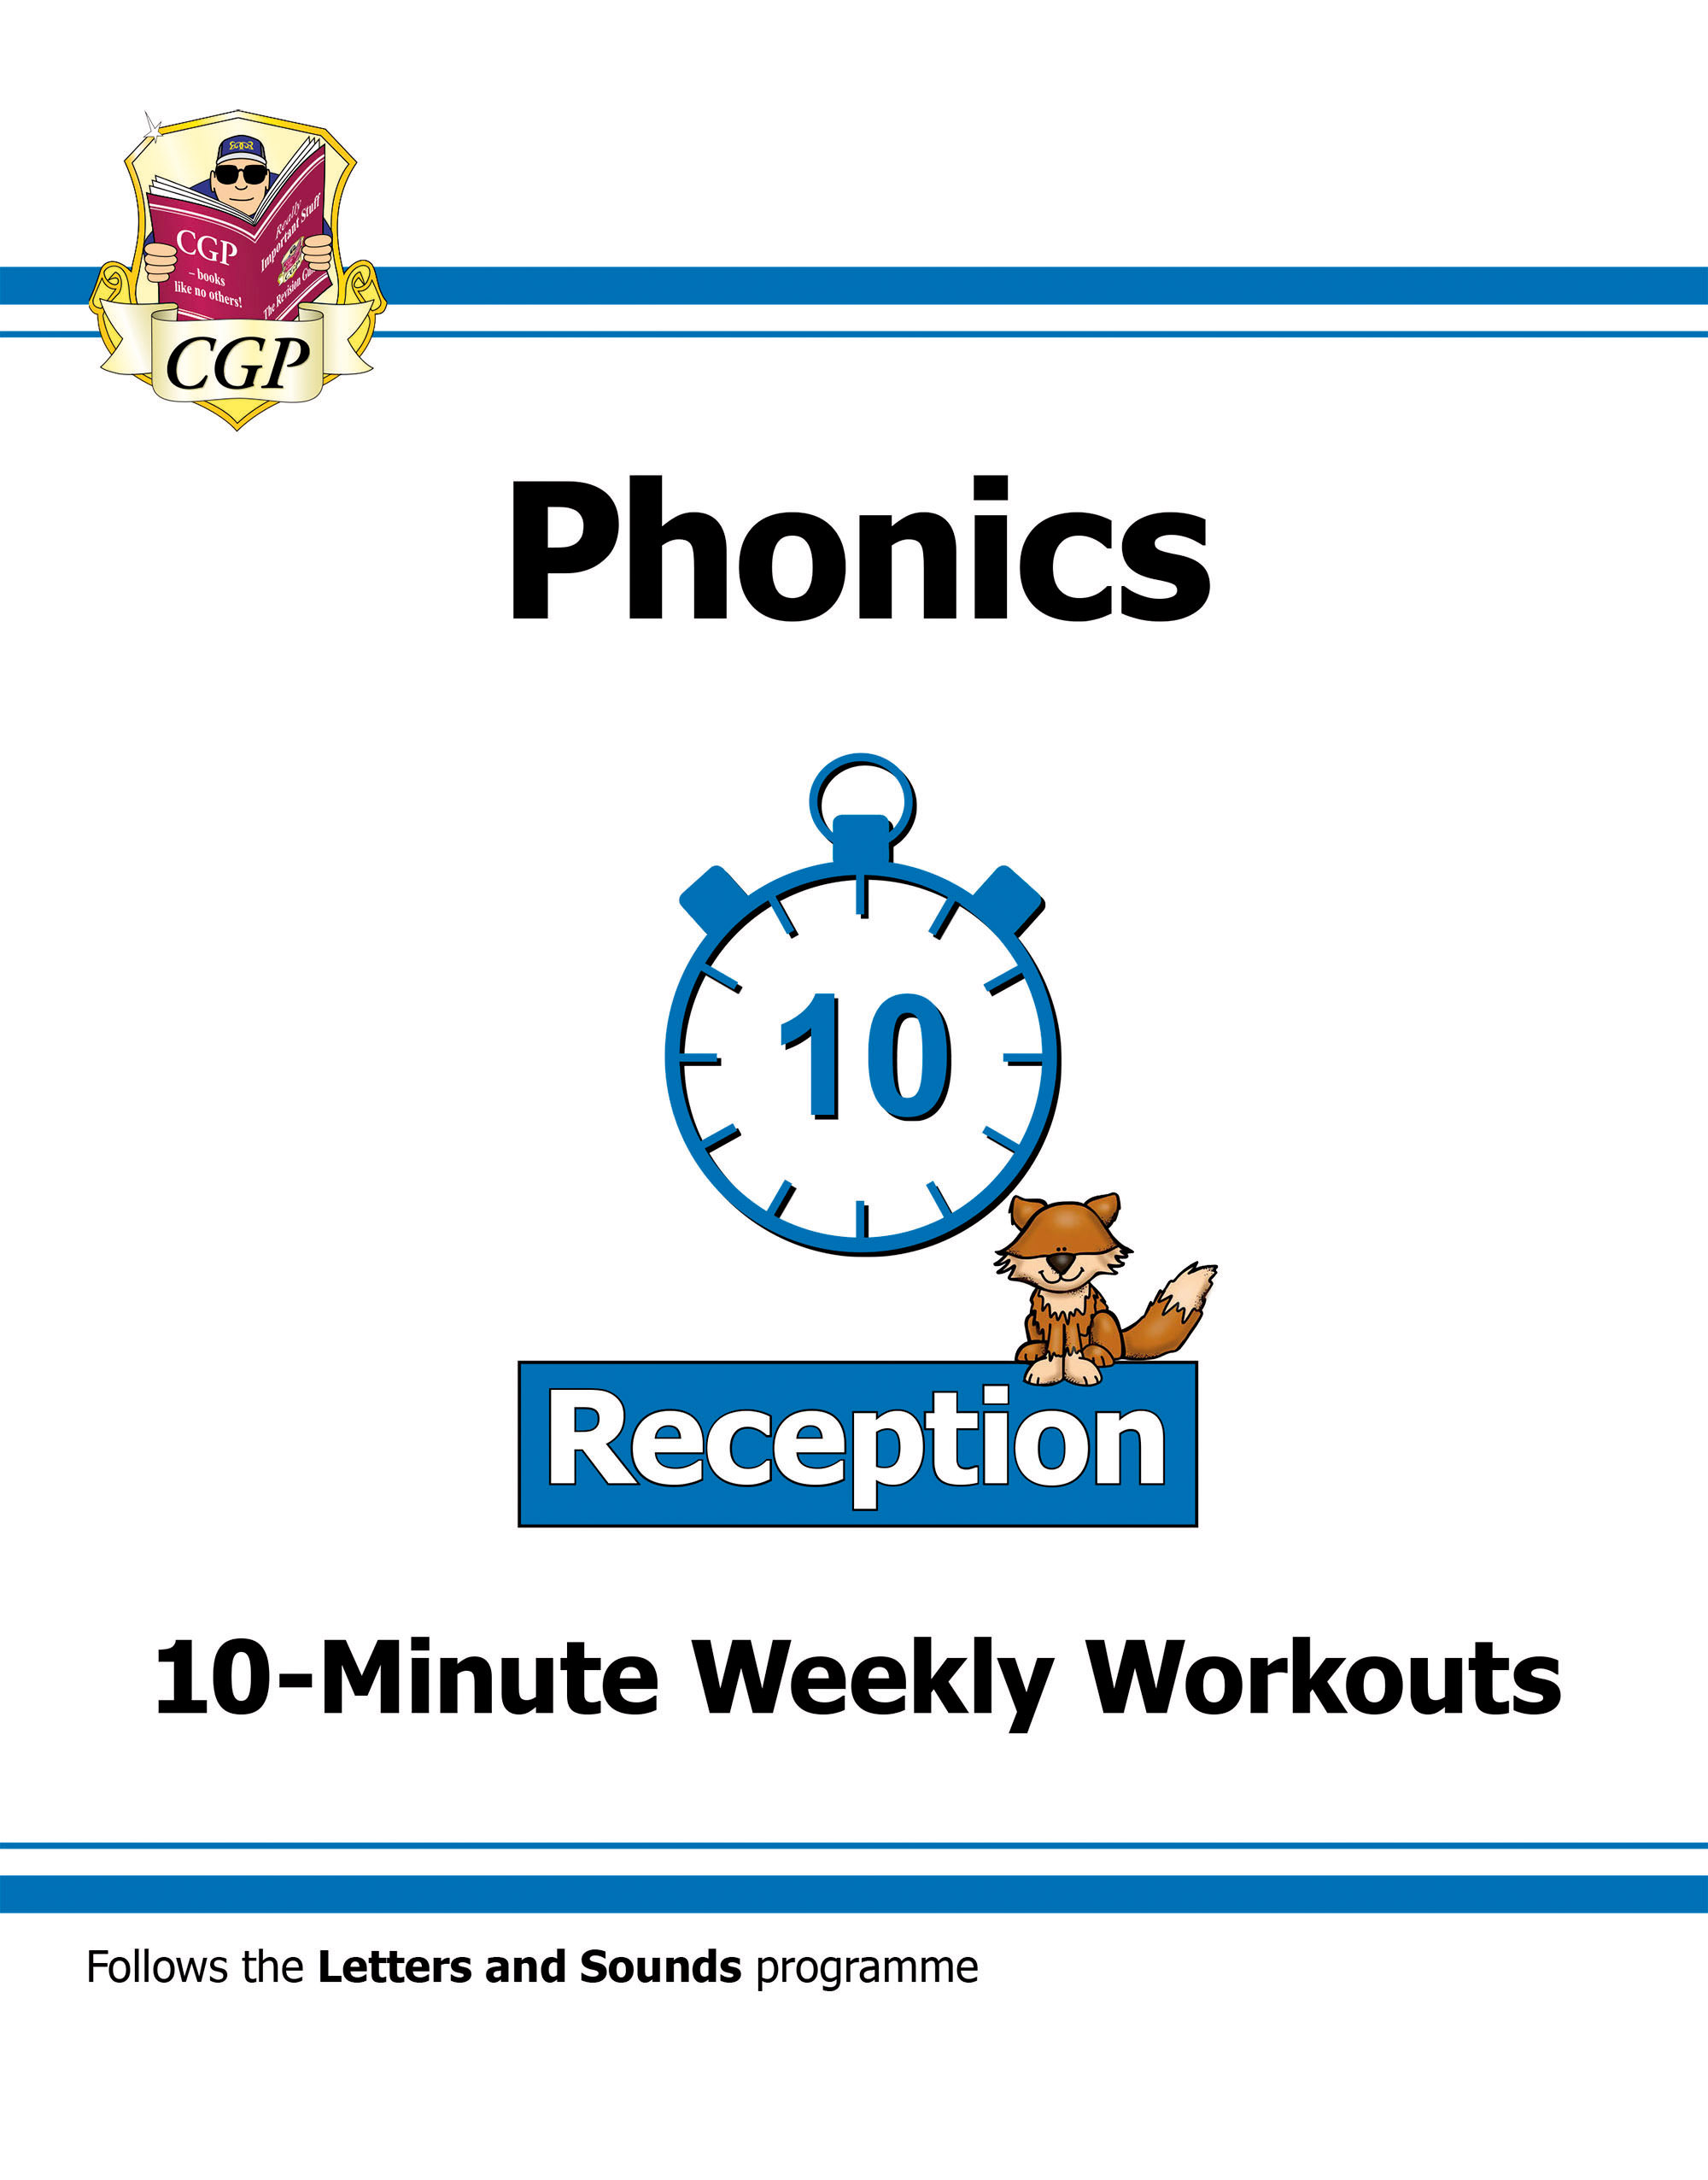 EROXW11DK - New English 10-Minute Weekly Workouts: Phonics - Reception